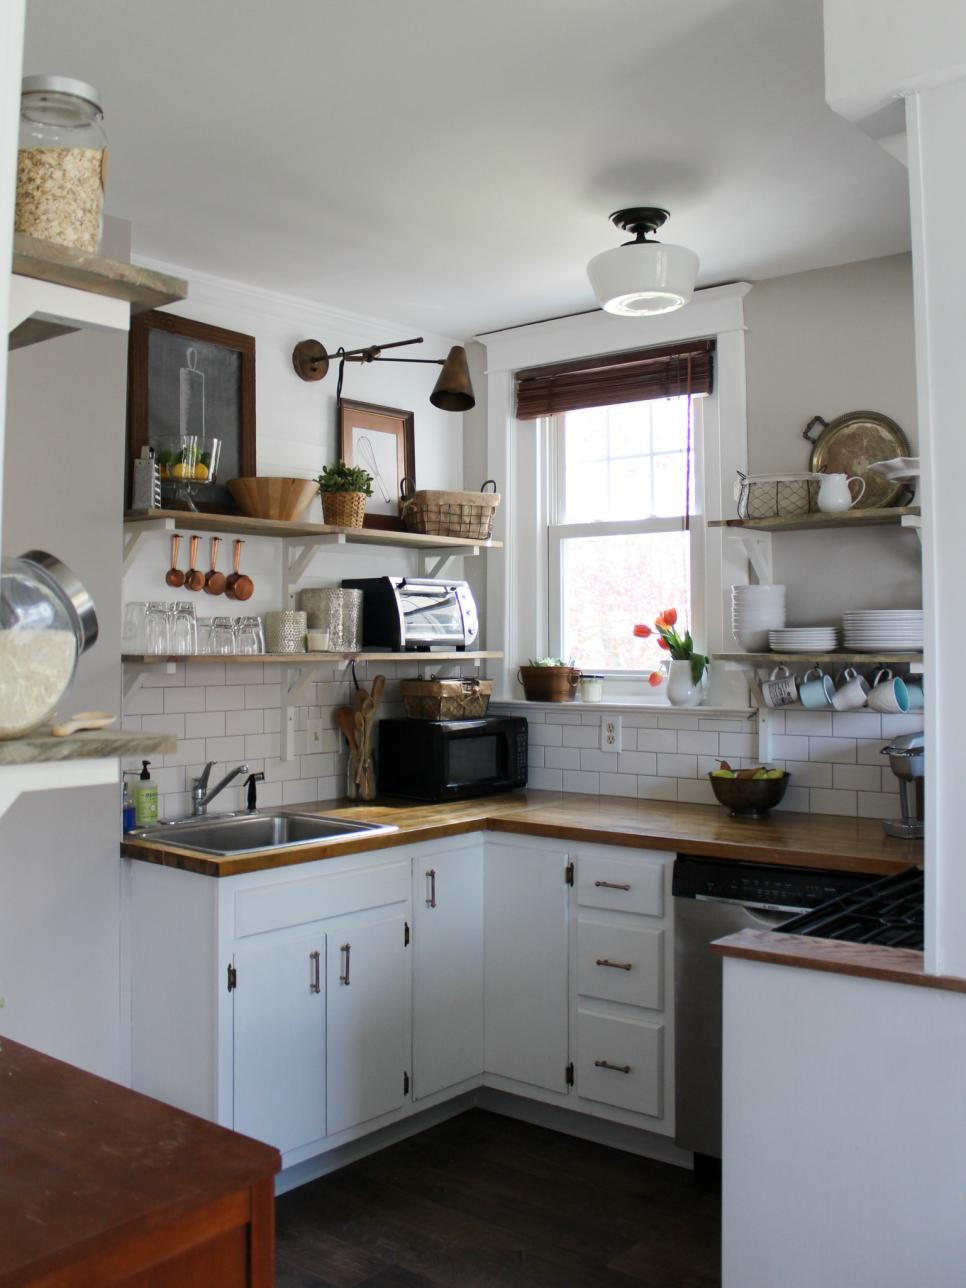 Before and after kitchen remodels on a budget hgtv for Small kitchen redesign